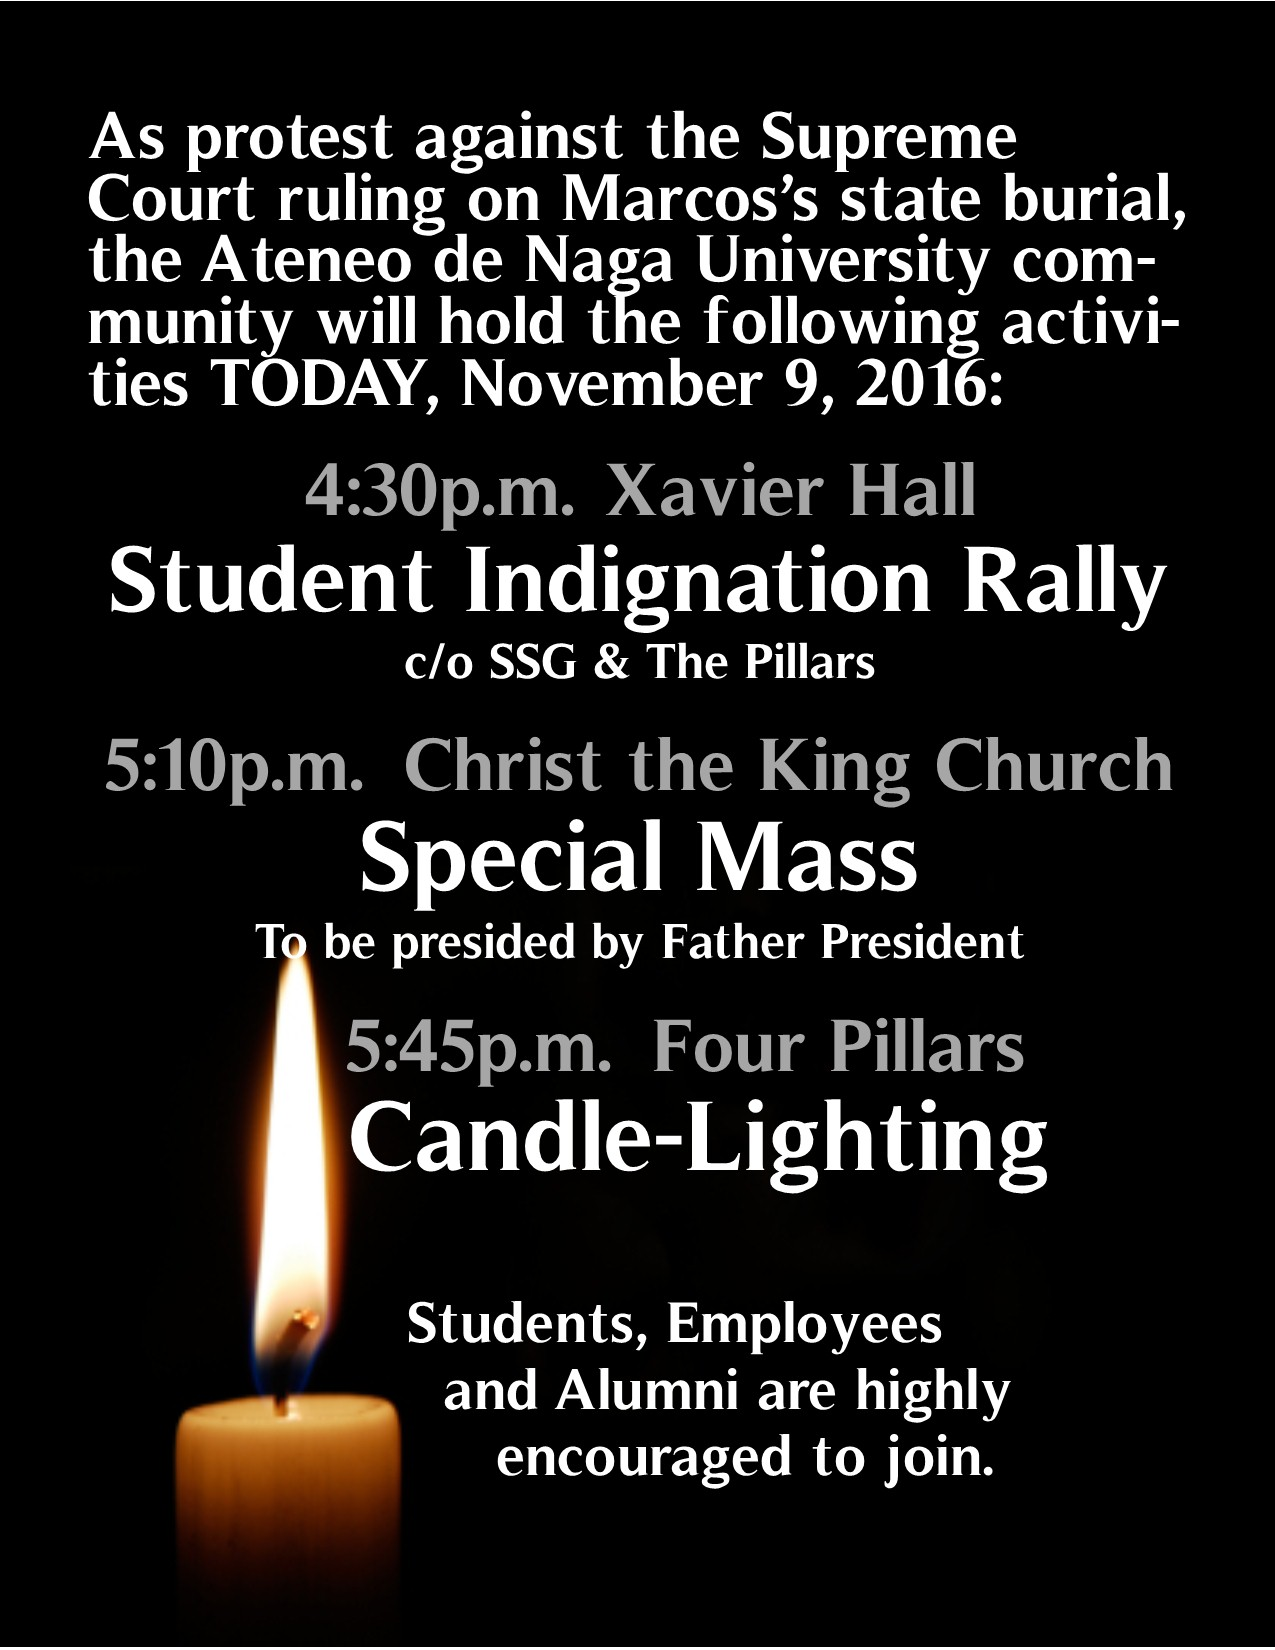 adnu candlelighting protest